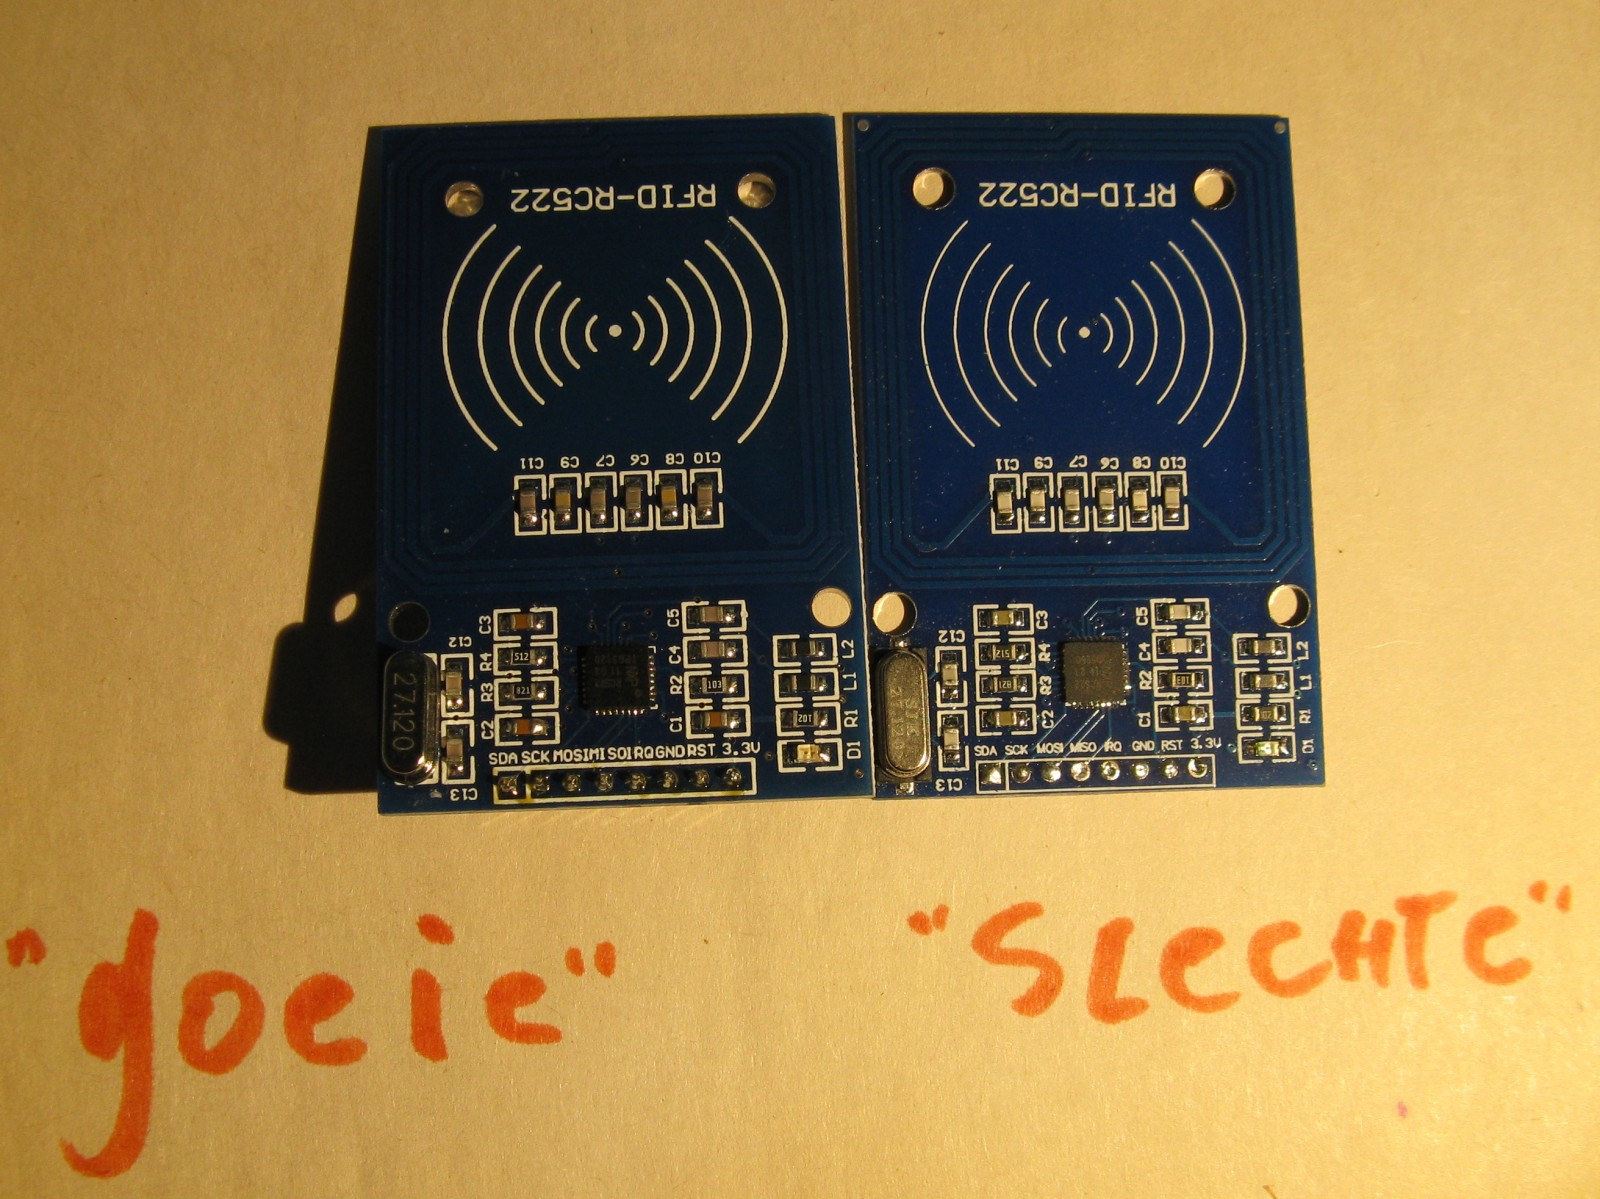 RFID_RC522_COMPARE_GOODvsBAD_2